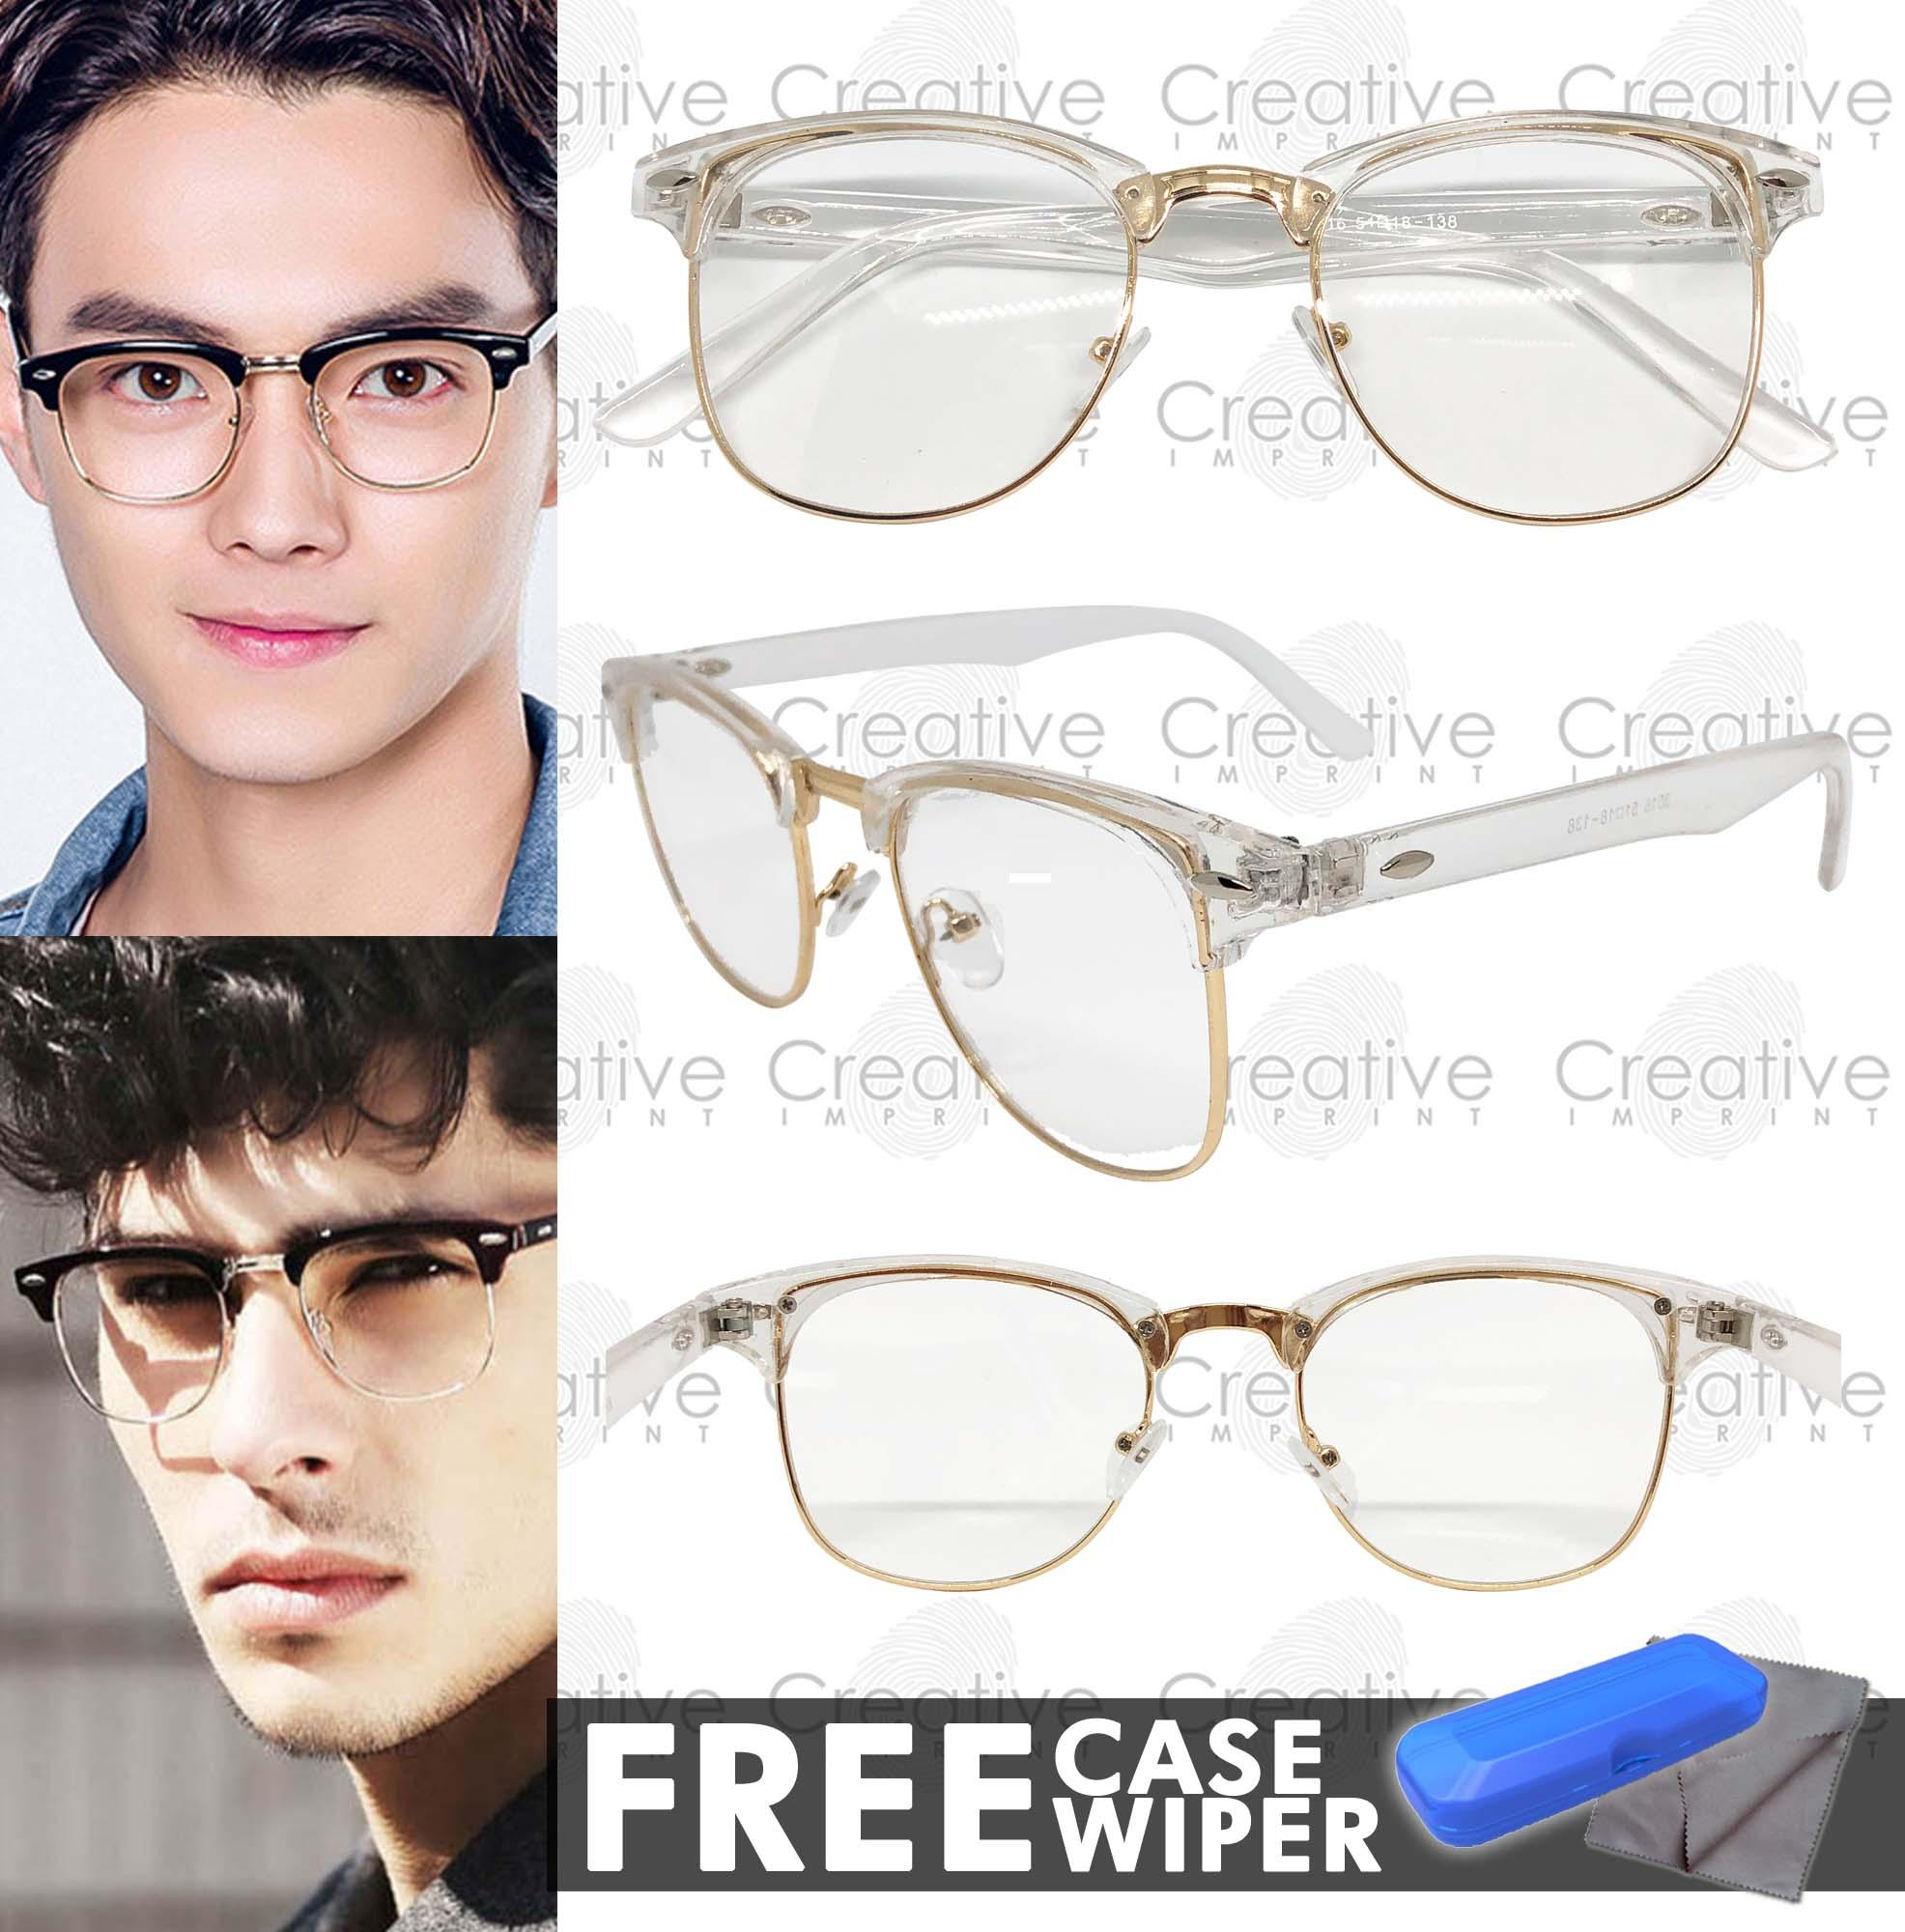 55b1aa8871ad7 Creative Imprint Eyeglasses Replaceable Lens (Clubmaster  01 White Gold)  Premium High Quality Specs